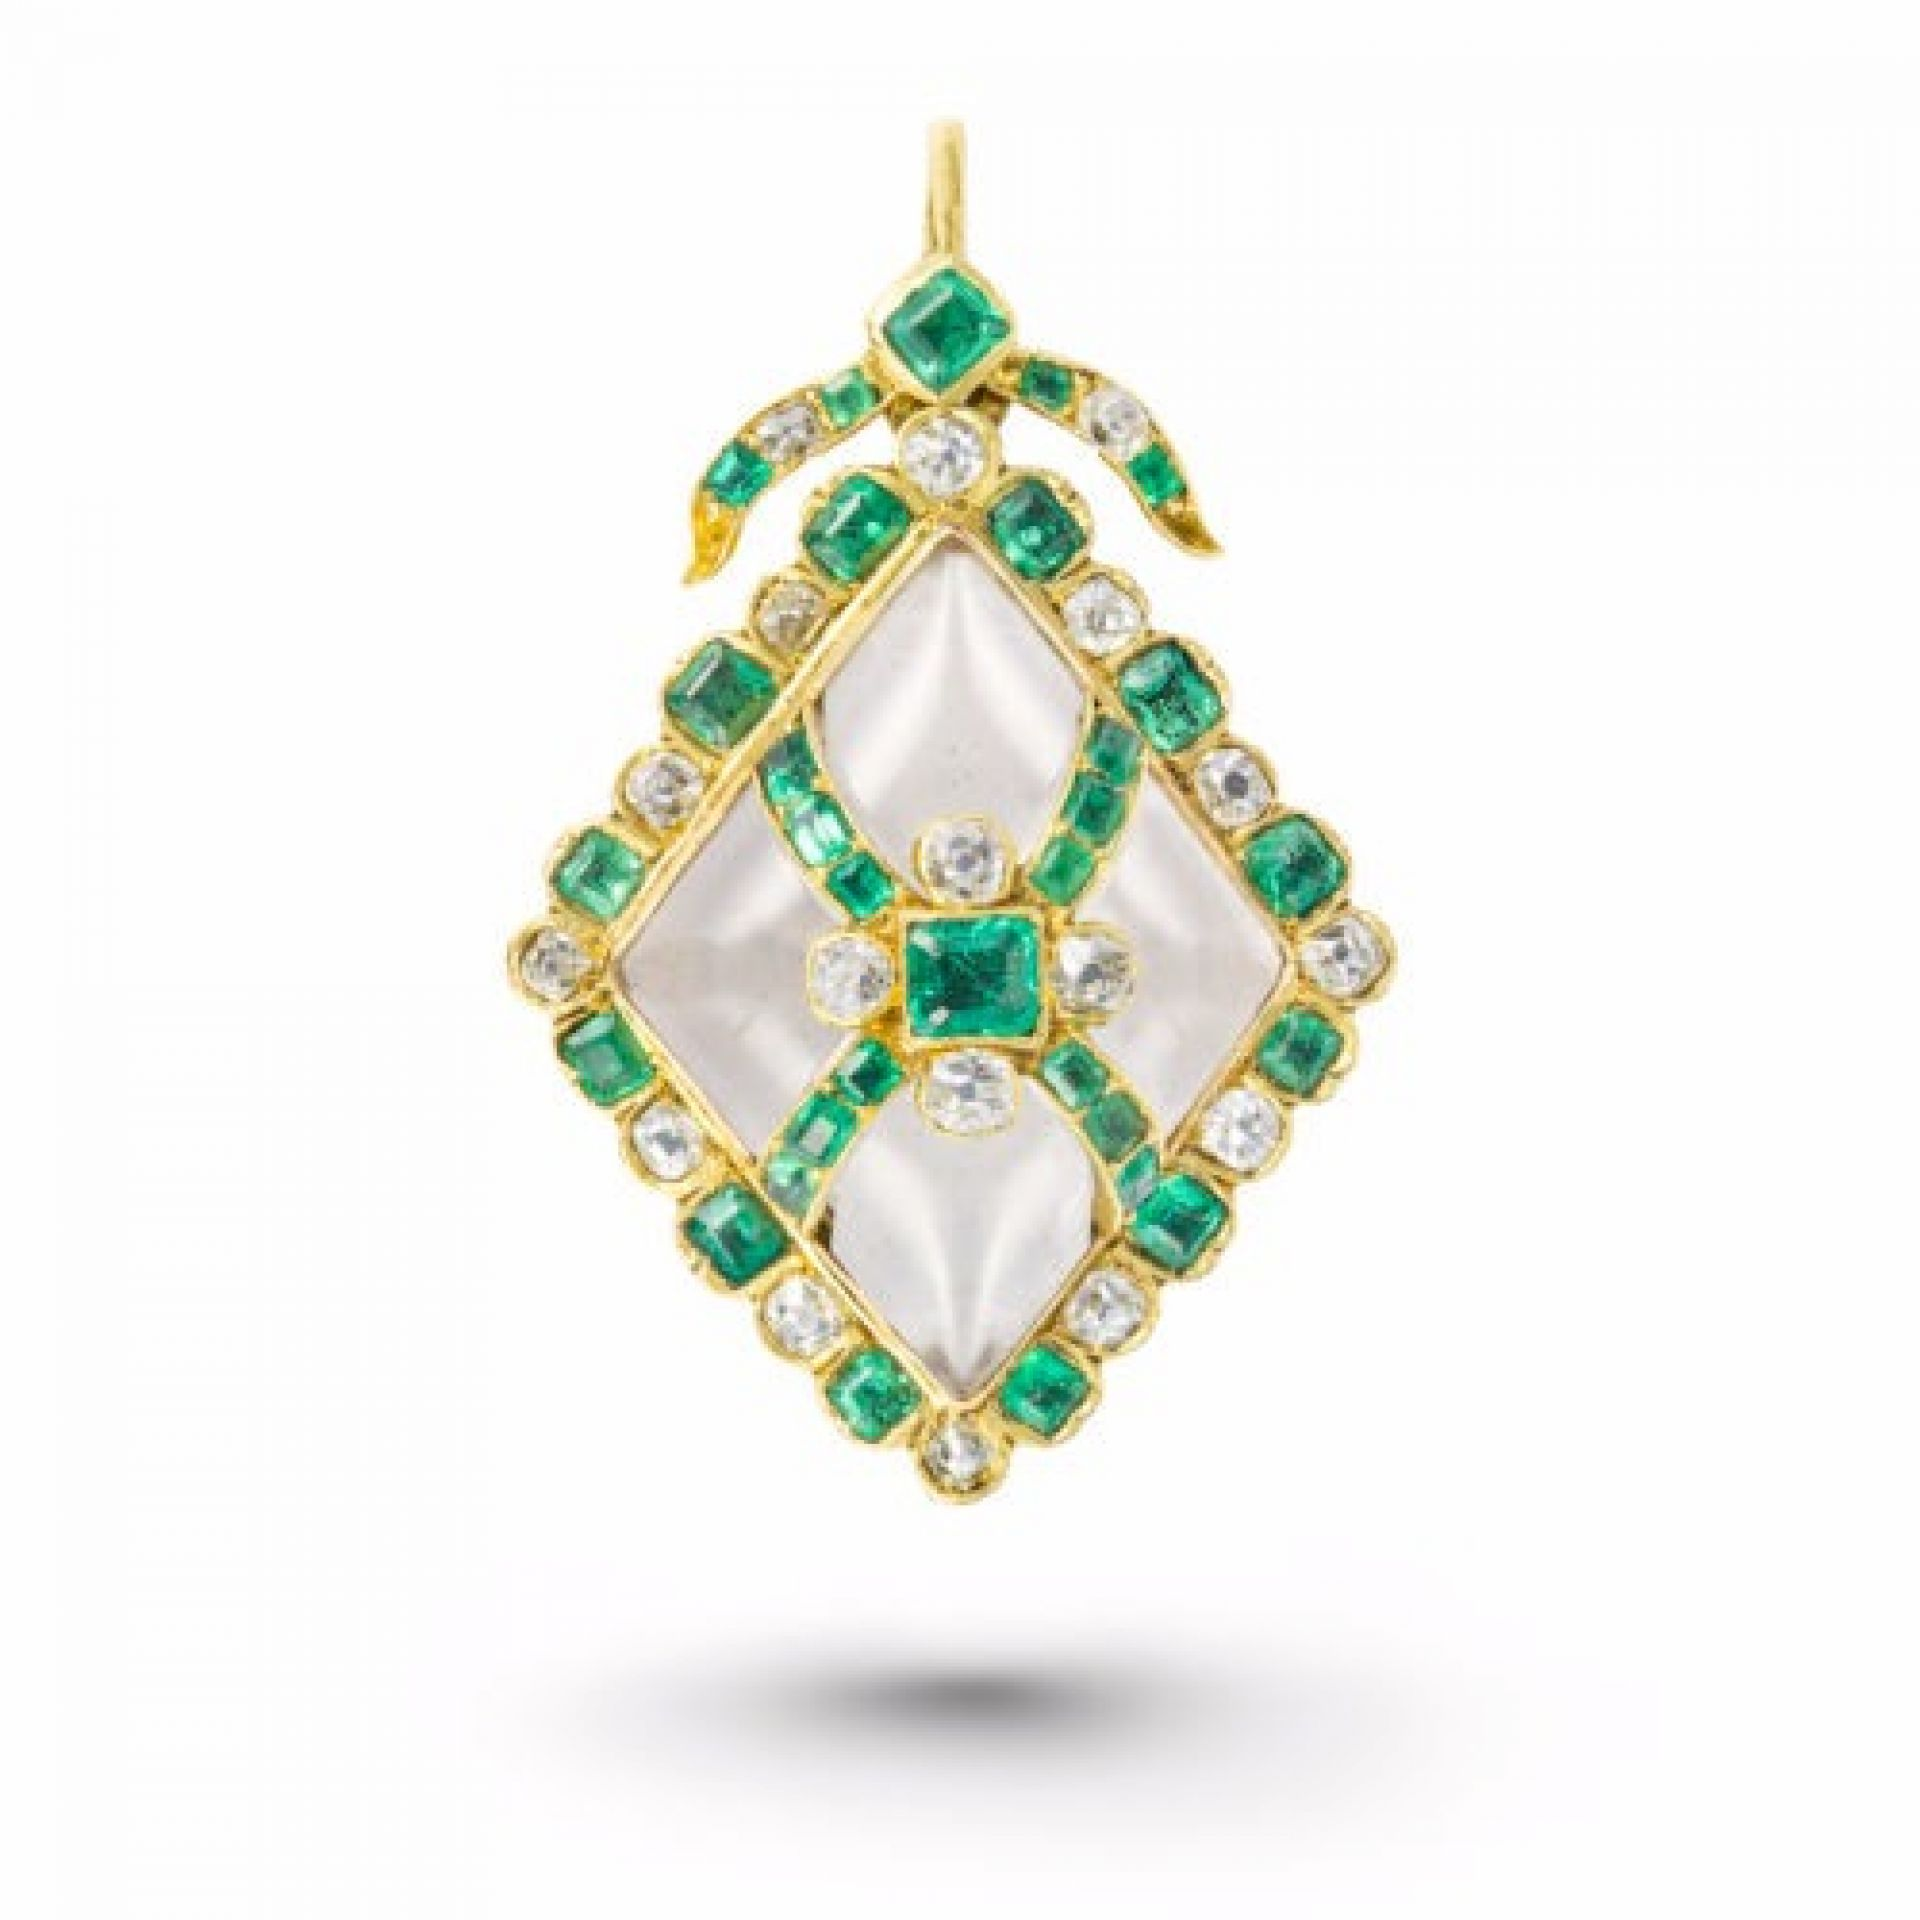 An emerald, rock crystal and diamond pendant